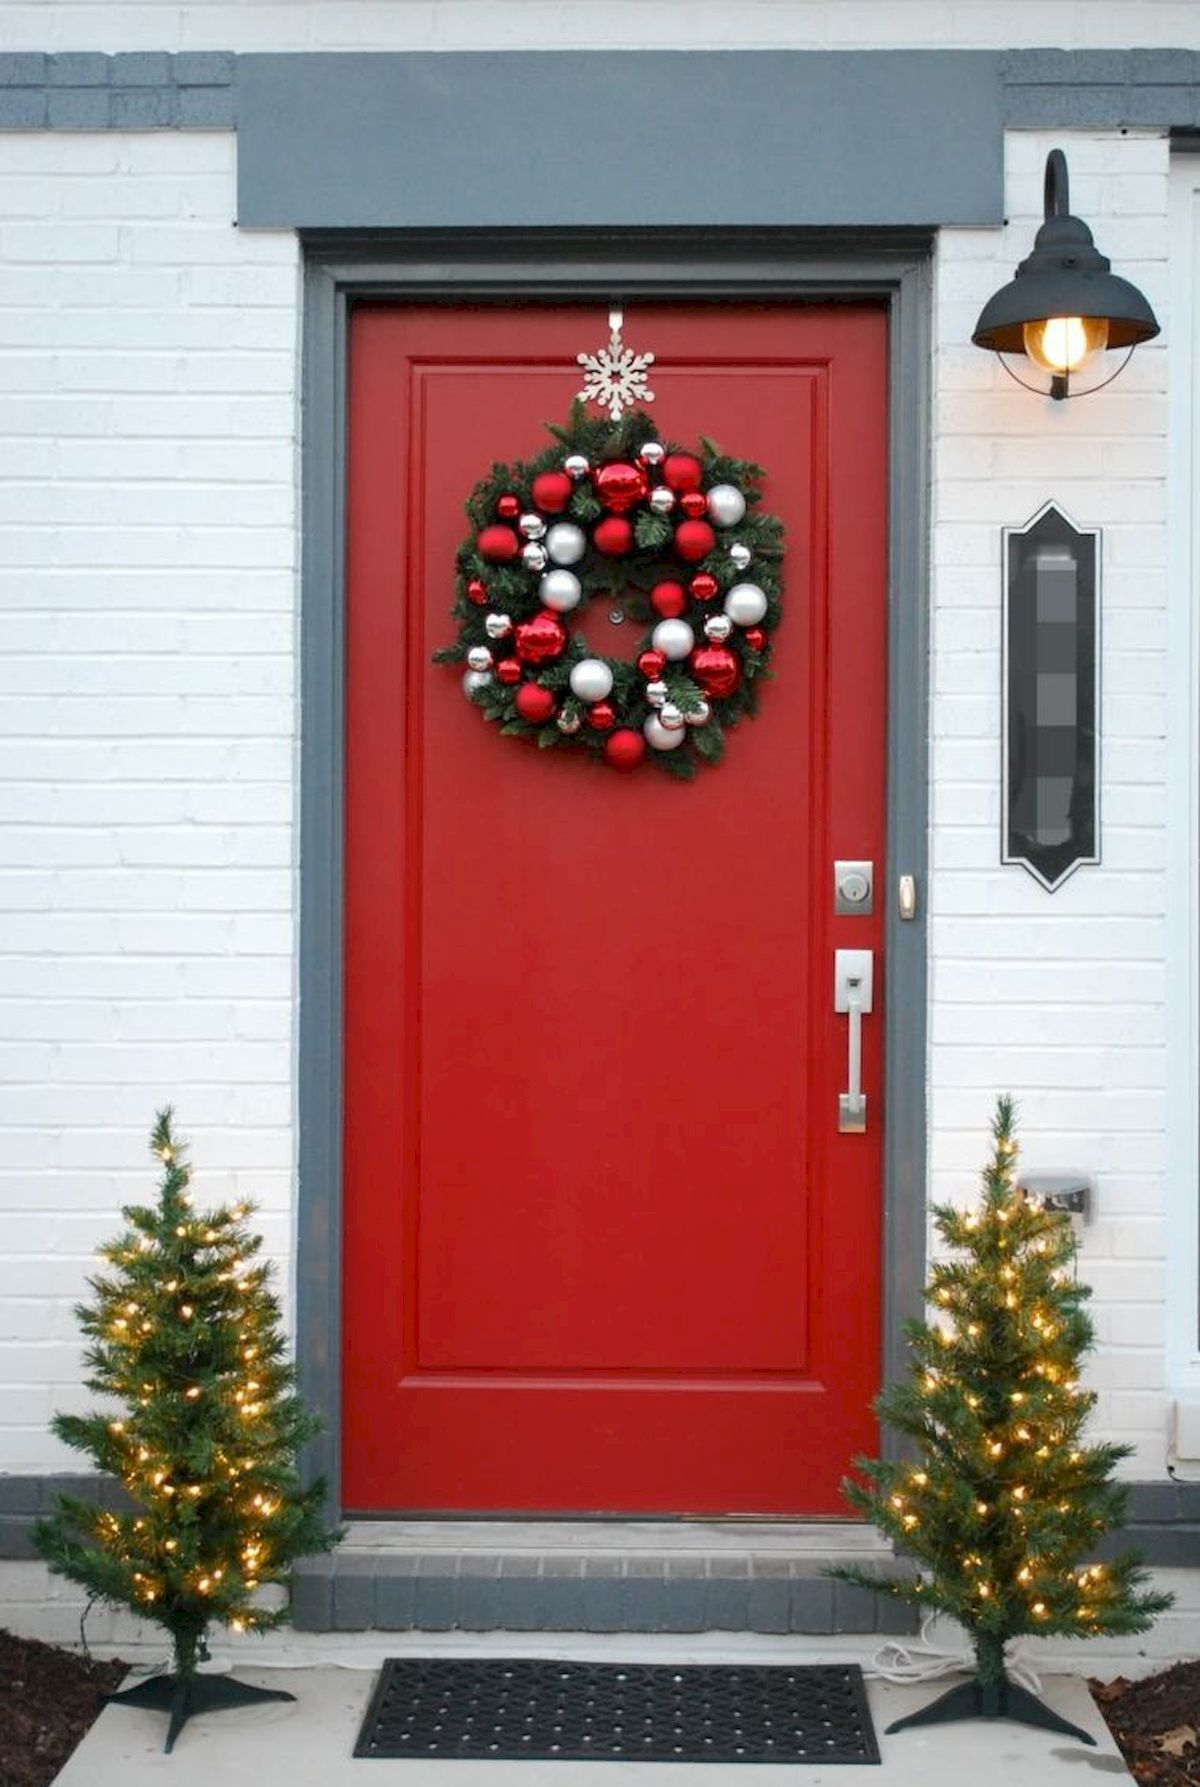 40 Most Fantastic And Easy Christmas Decorations For Your Apartment Ideas 31